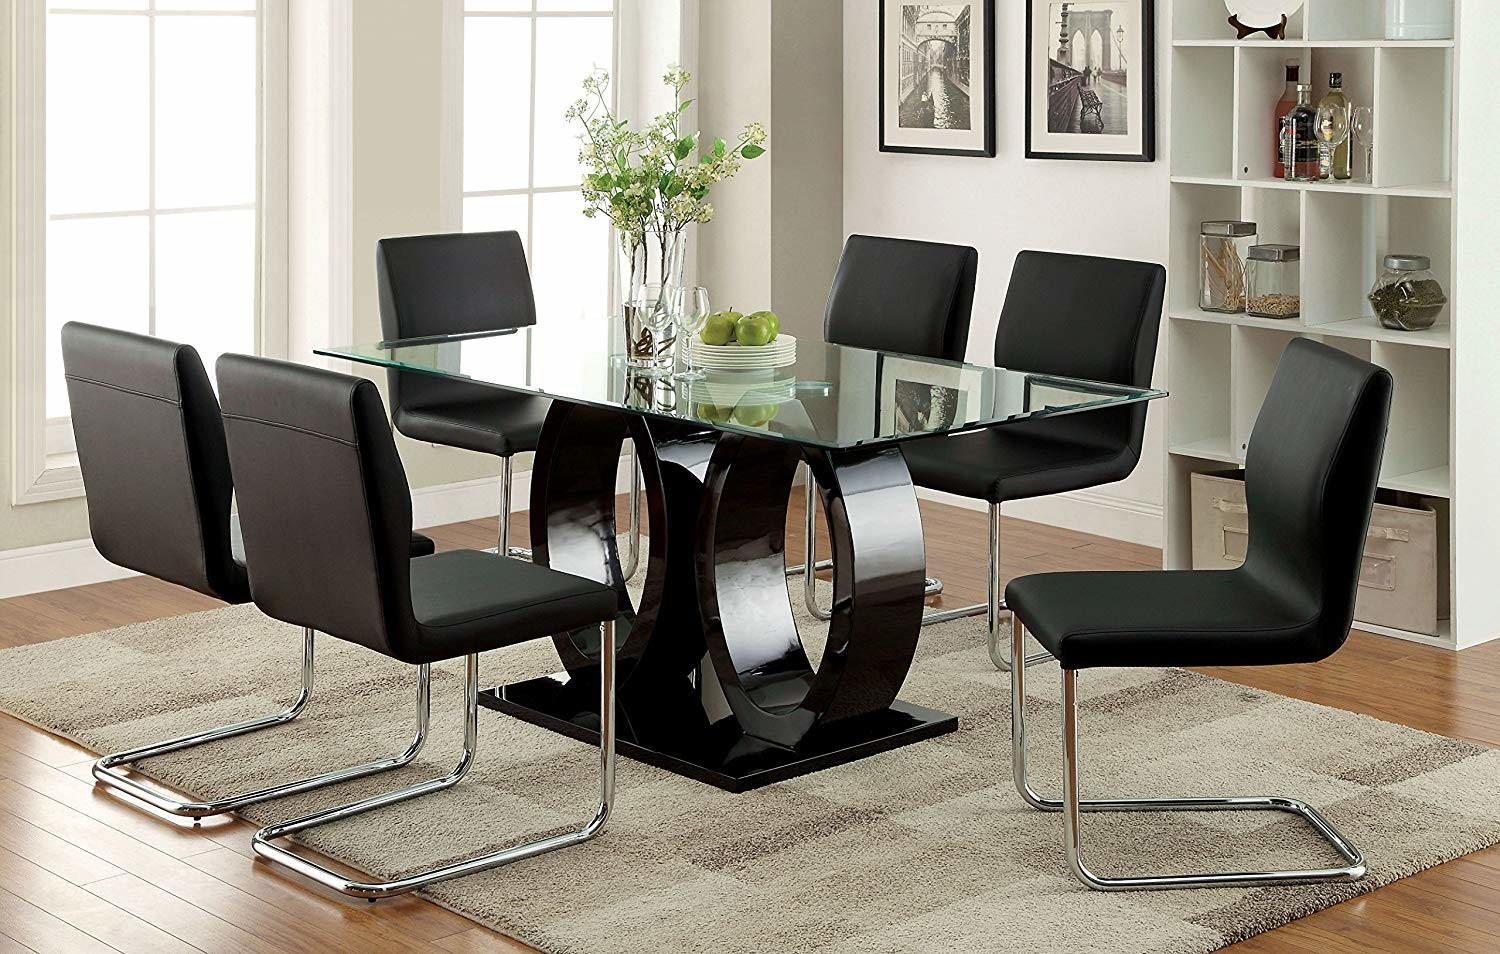 Full Images of Chrome And Glass Dining Table Modern Dining Room Furniture  Glass Topped Dining Room